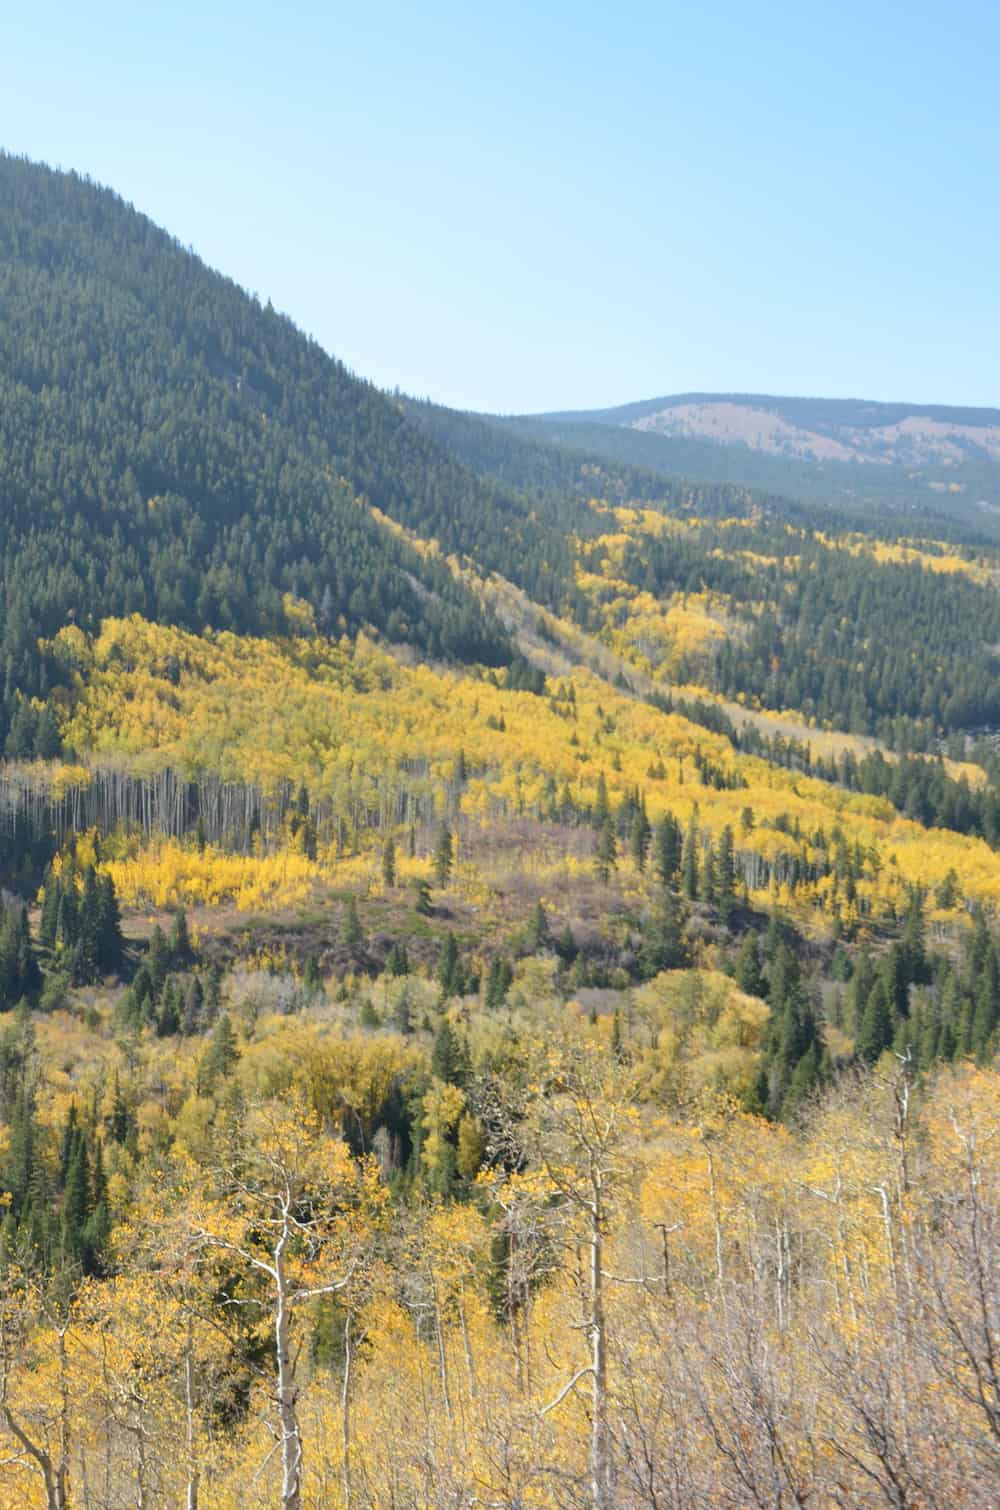 Fields full of yellow wild flowers in the mountains around Aspen.